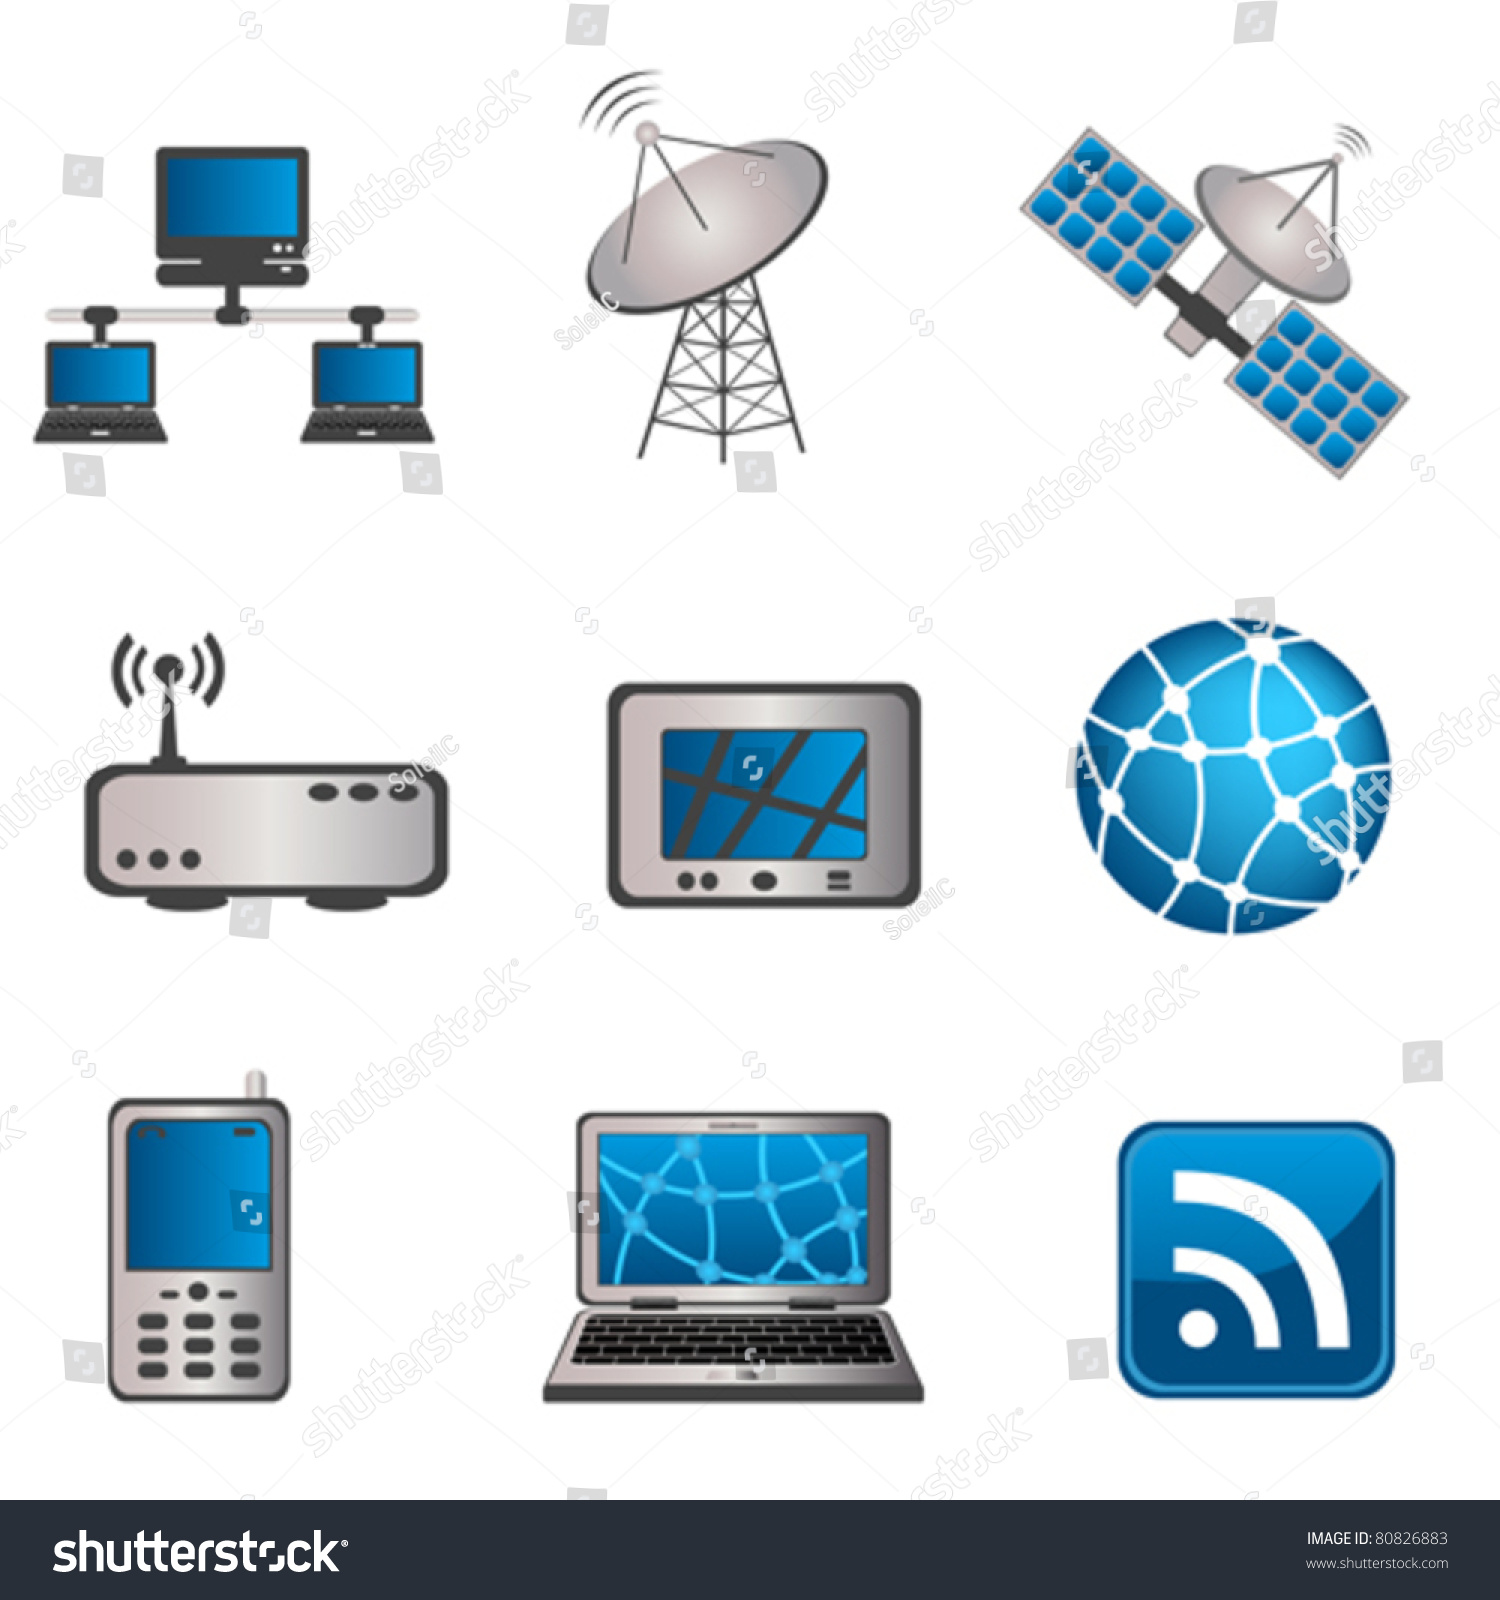 Communication Technology Computer Icon Set Stock Vector